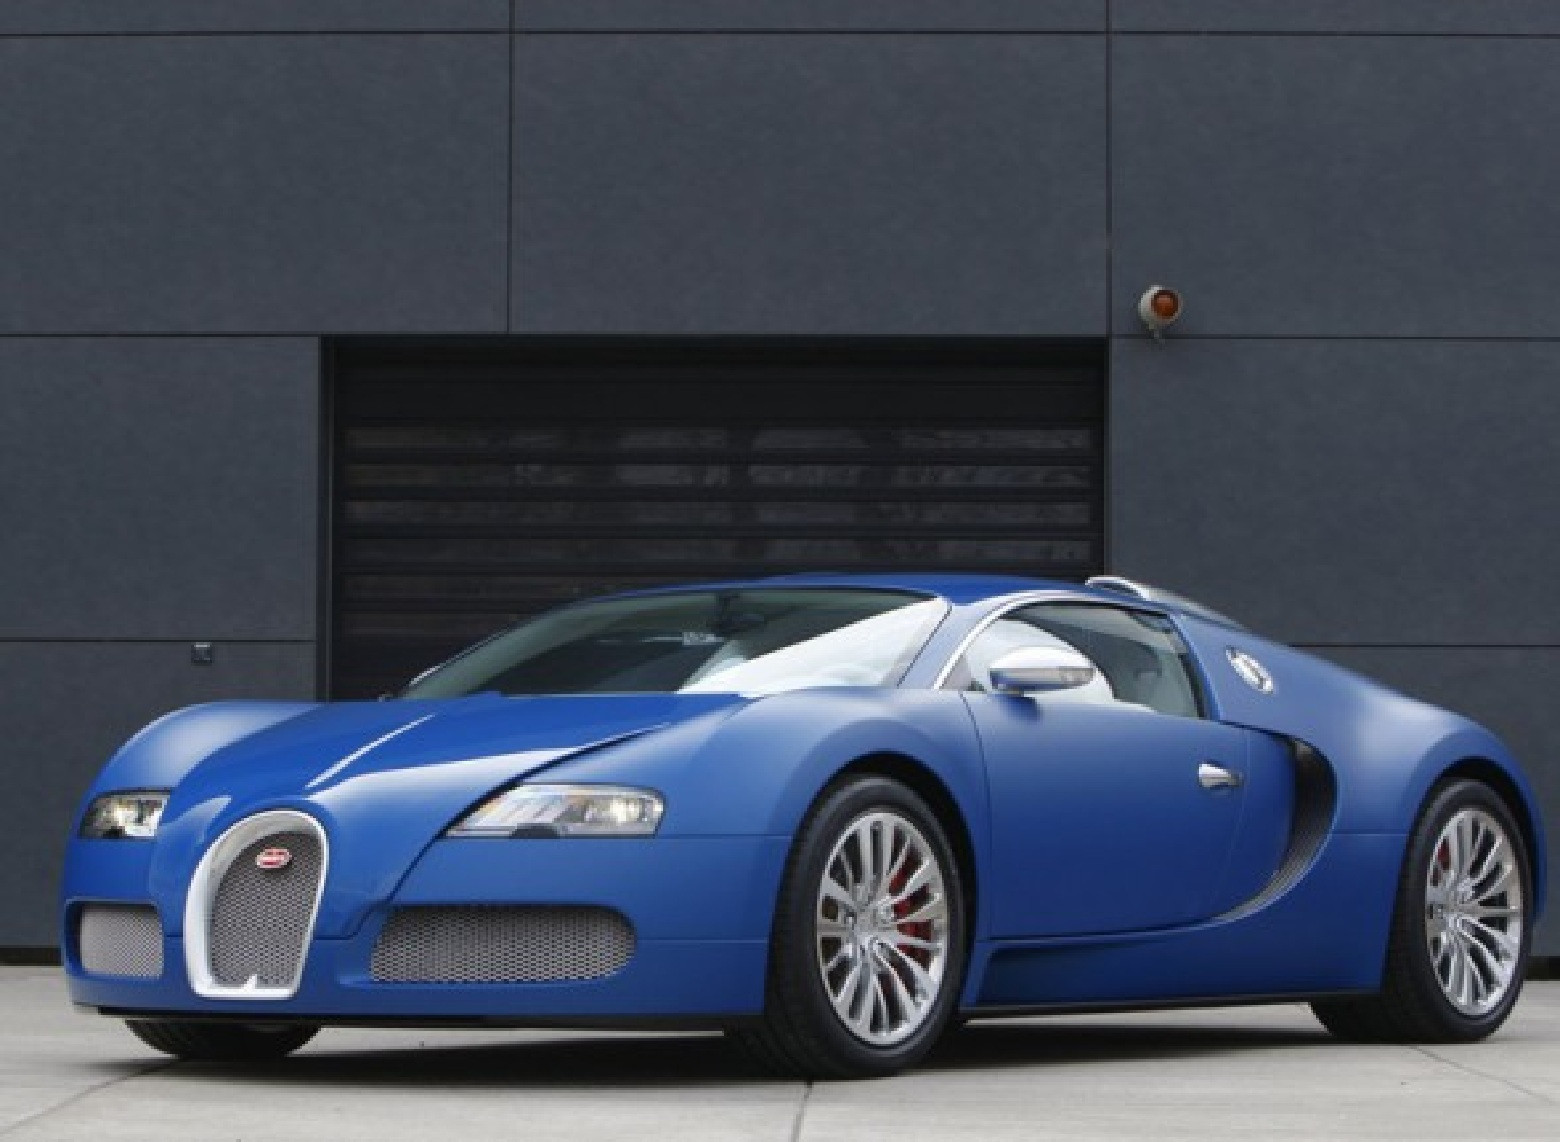 Cool car wallpapers bugatti veyron 2013 - Bugatti veyron photos wallpapers ...